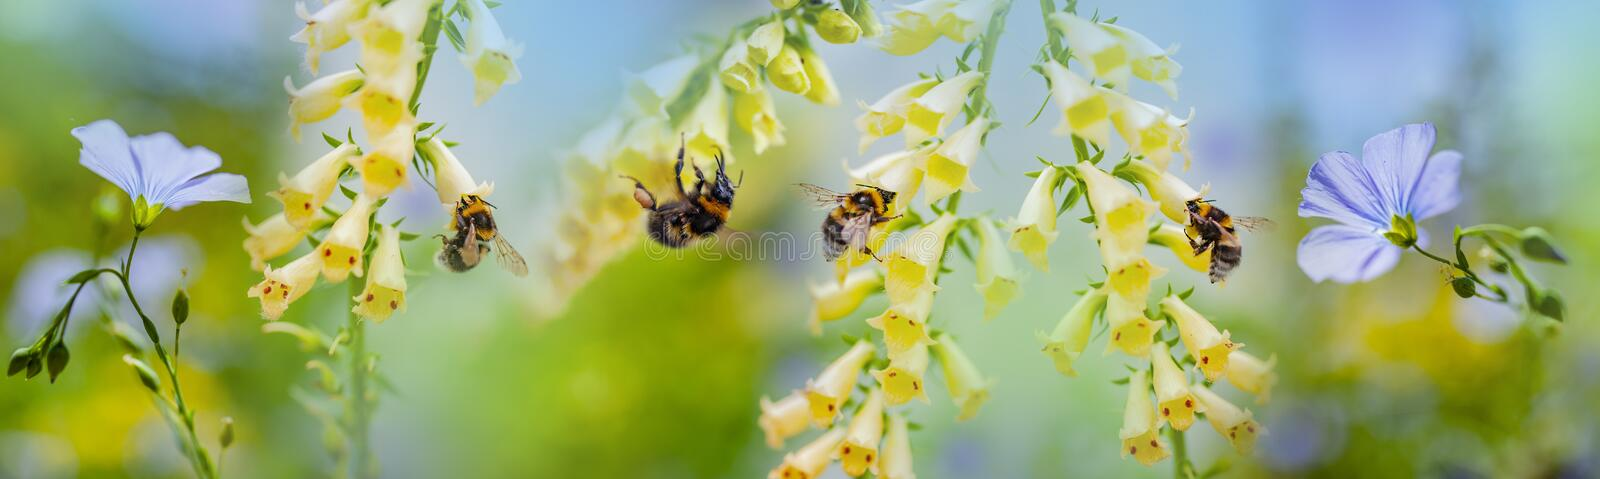 Bumblebees on flowers in the garden. Close up royalty free stock photos